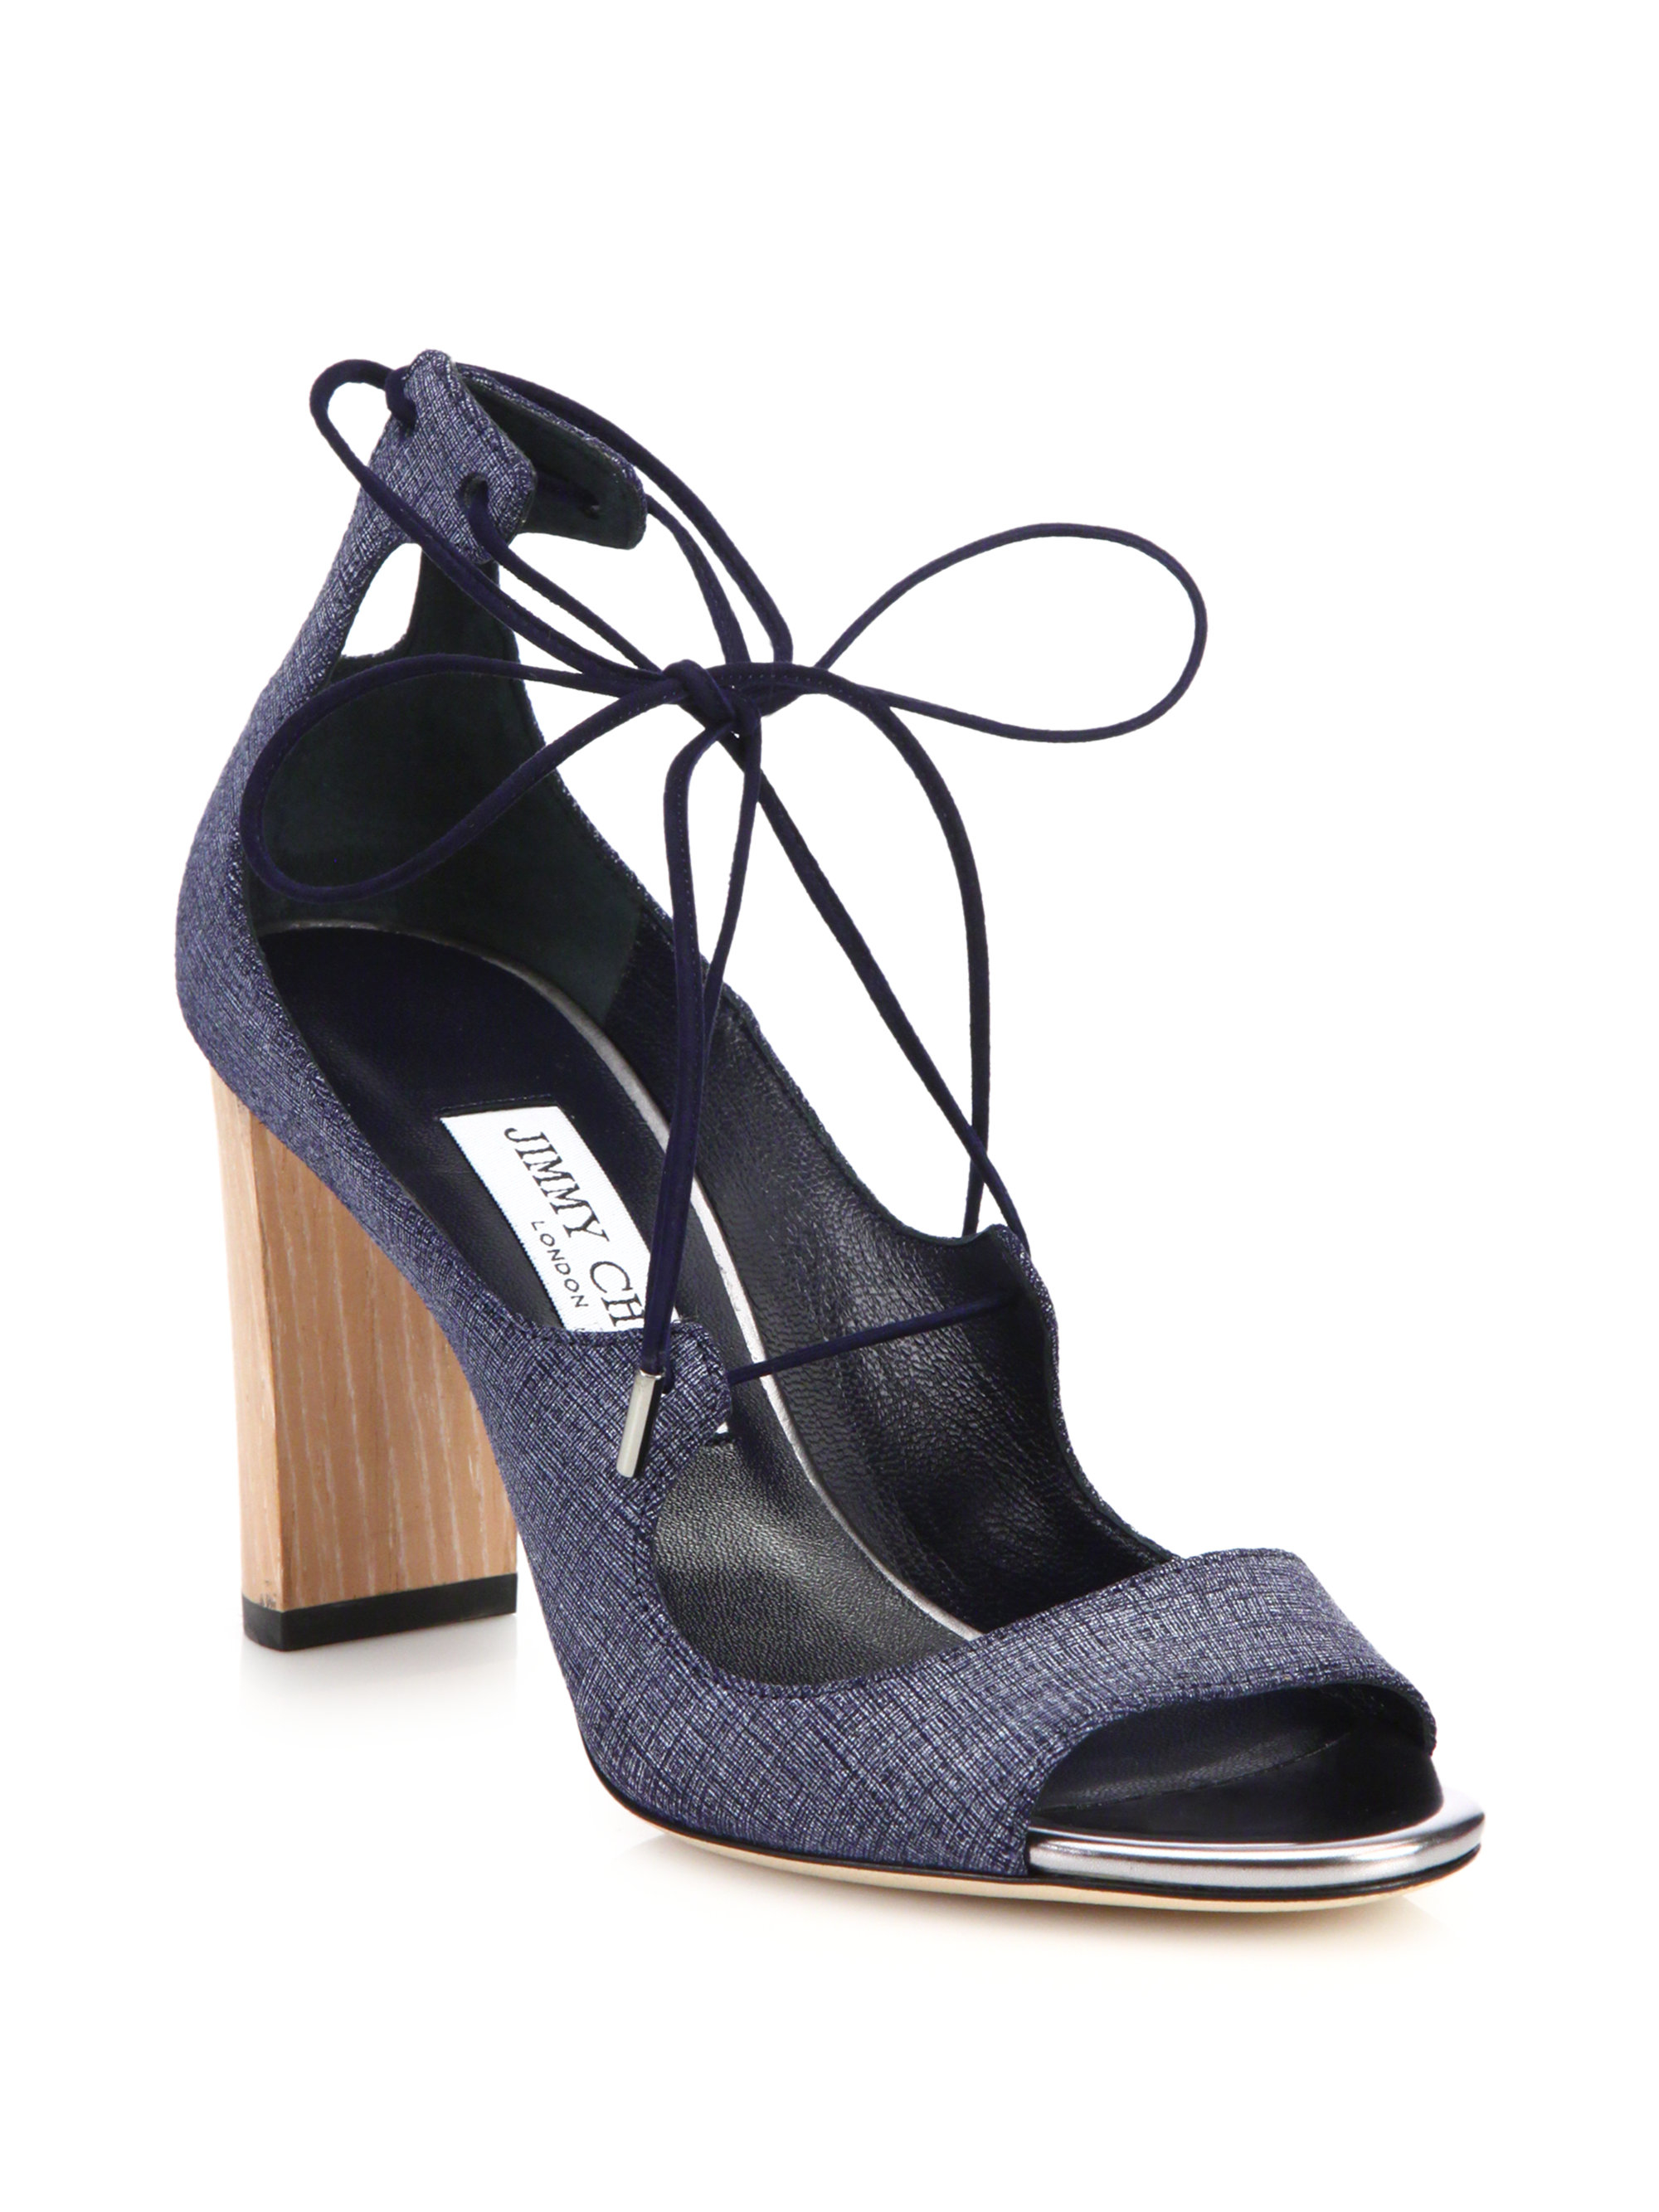 e3c31aabdf47 Lyst - Jimmy Choo Vernie Denim Leather Lace-up Sandals in Blue